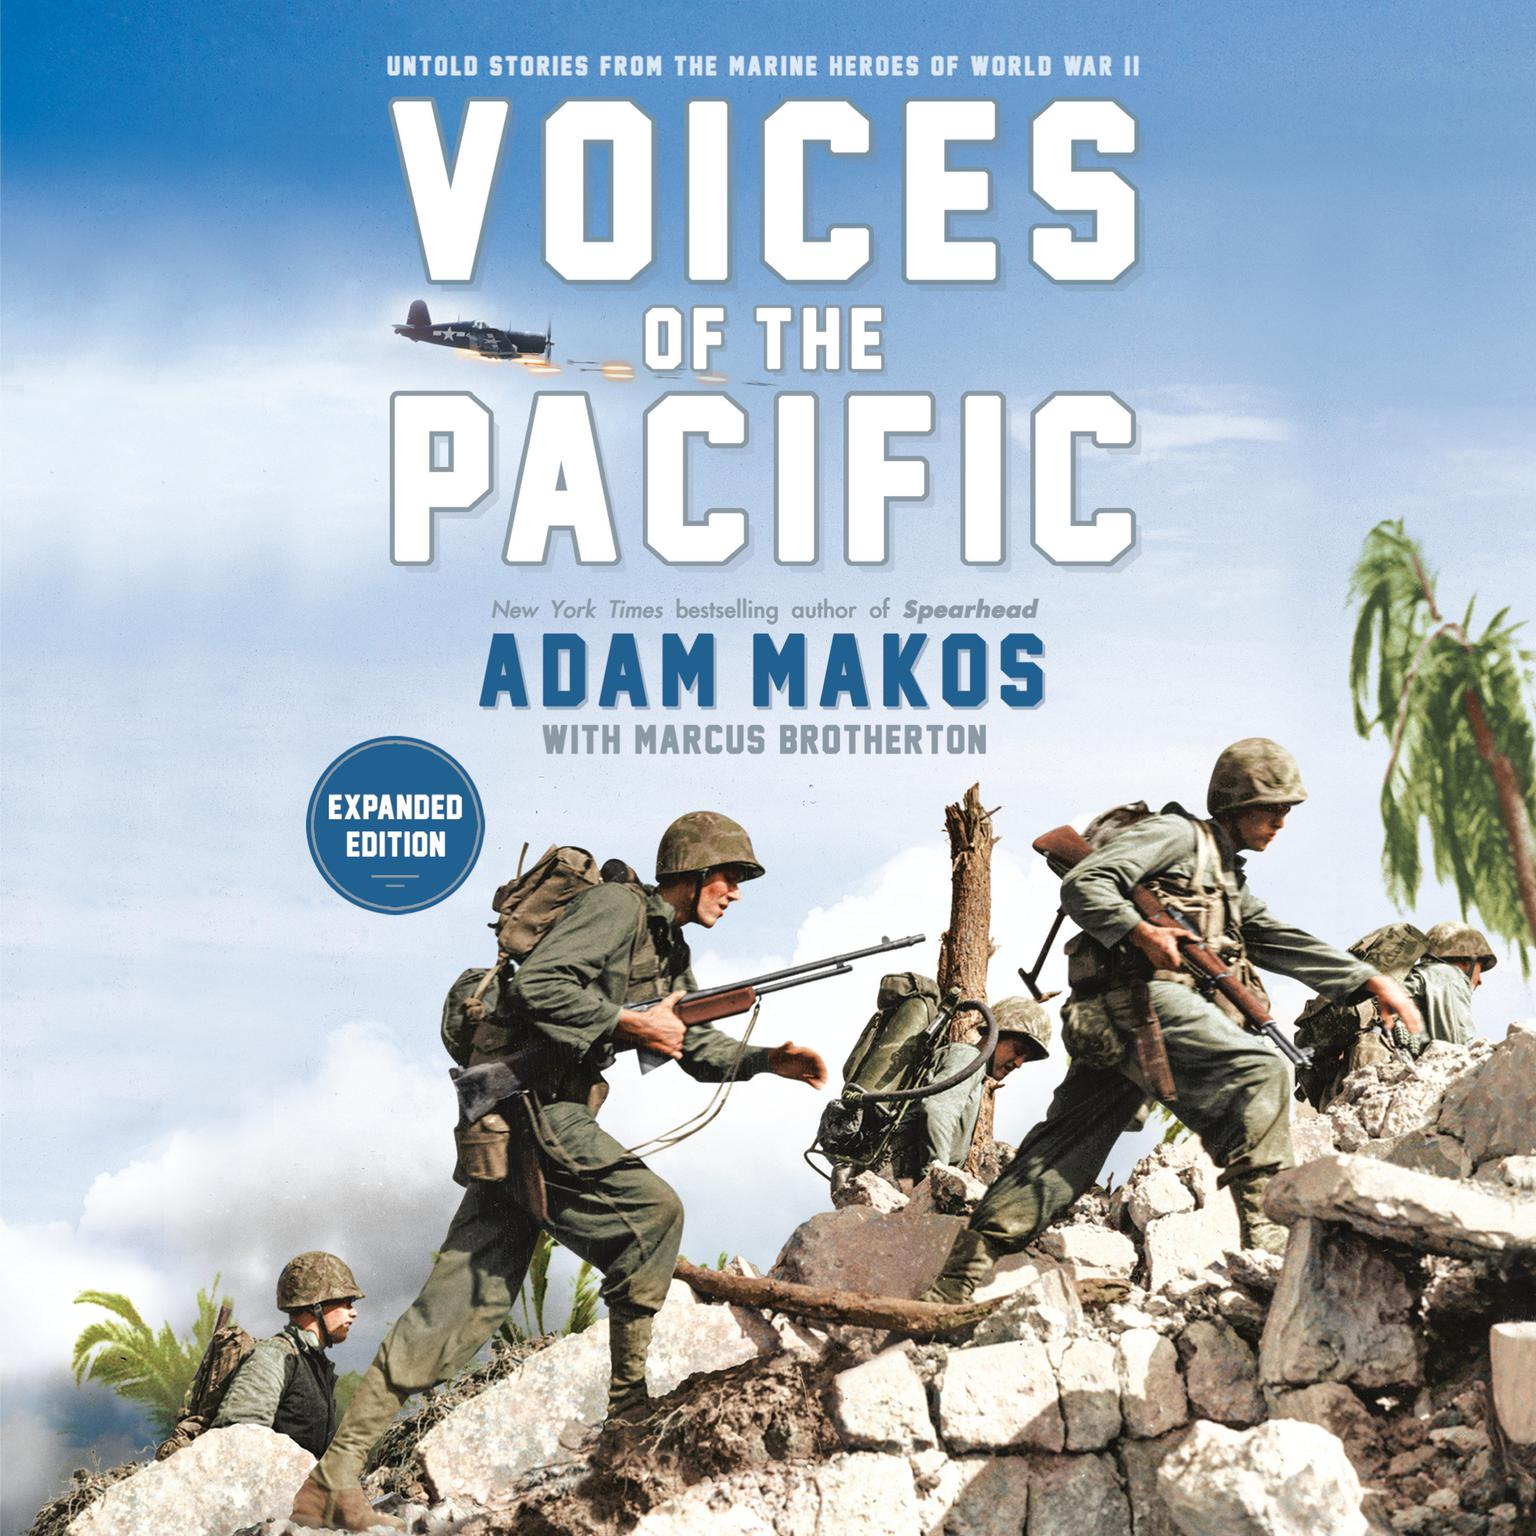 Voices of the Pacific, Expanded Edition: Untold Stories from the Marine Heroes of World War II Audiobook, by Adam Makos